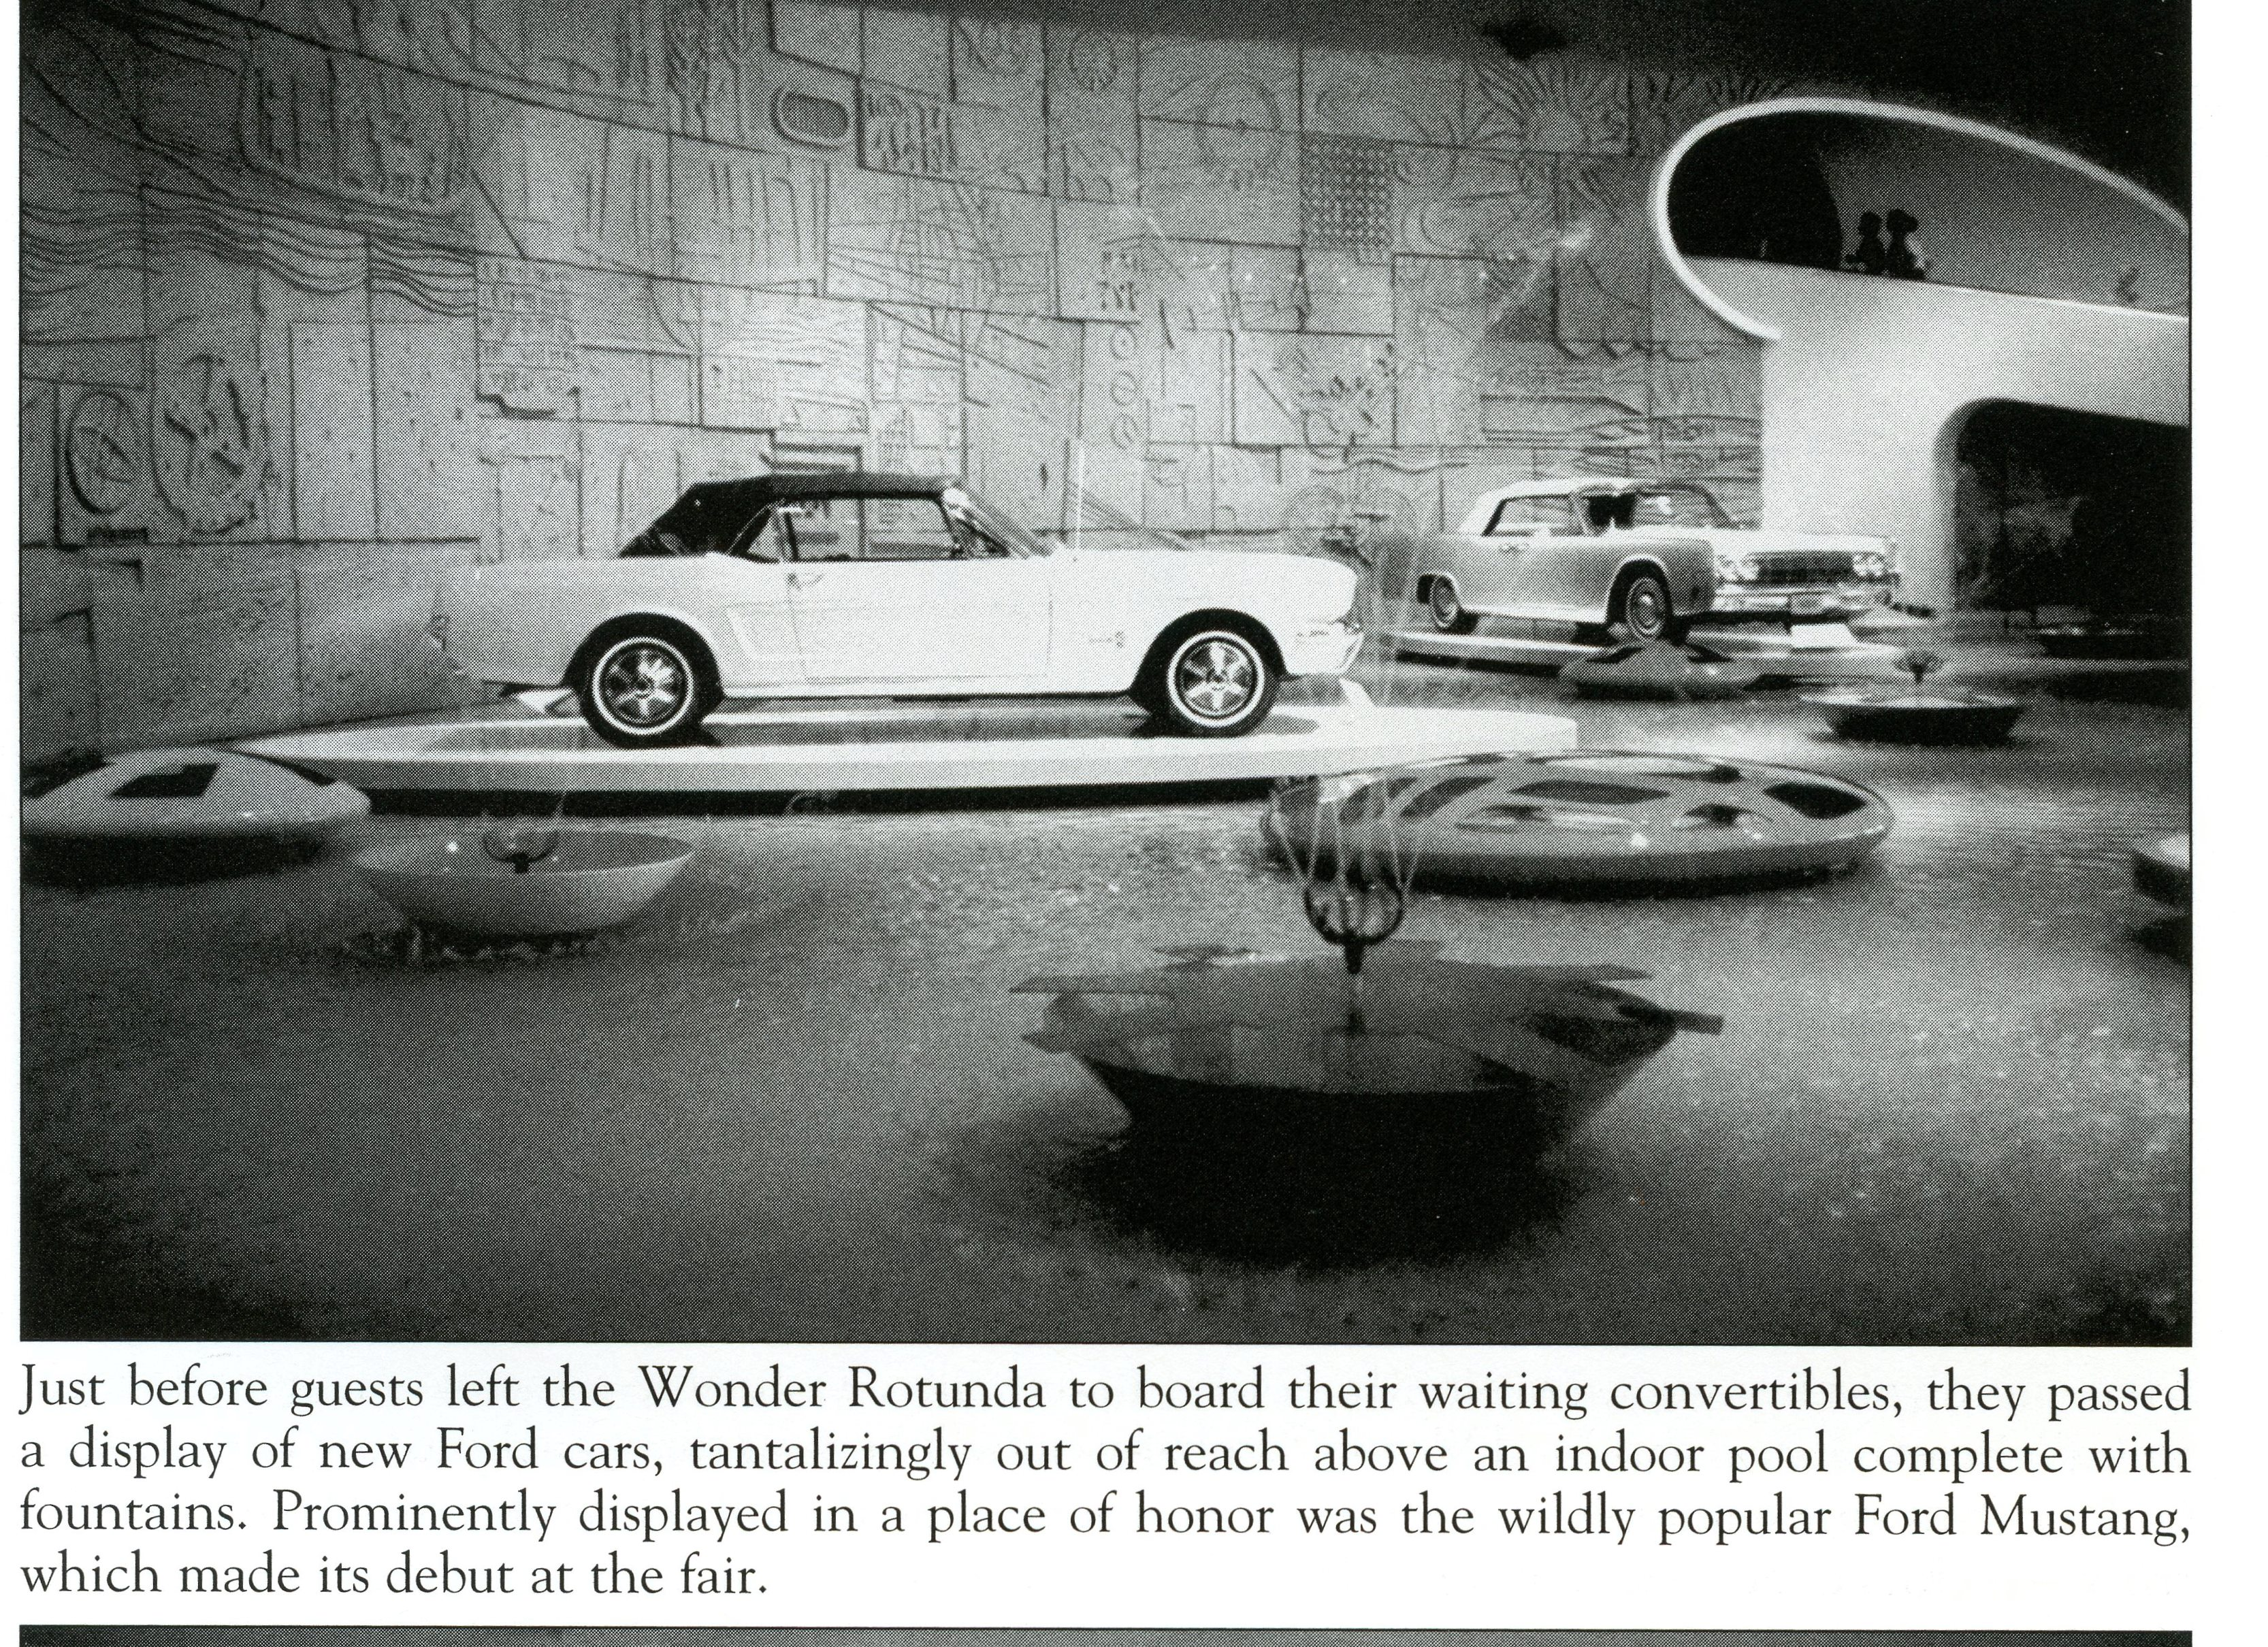 From The Book Images Of America 1964 1965 New York Worlds Fair